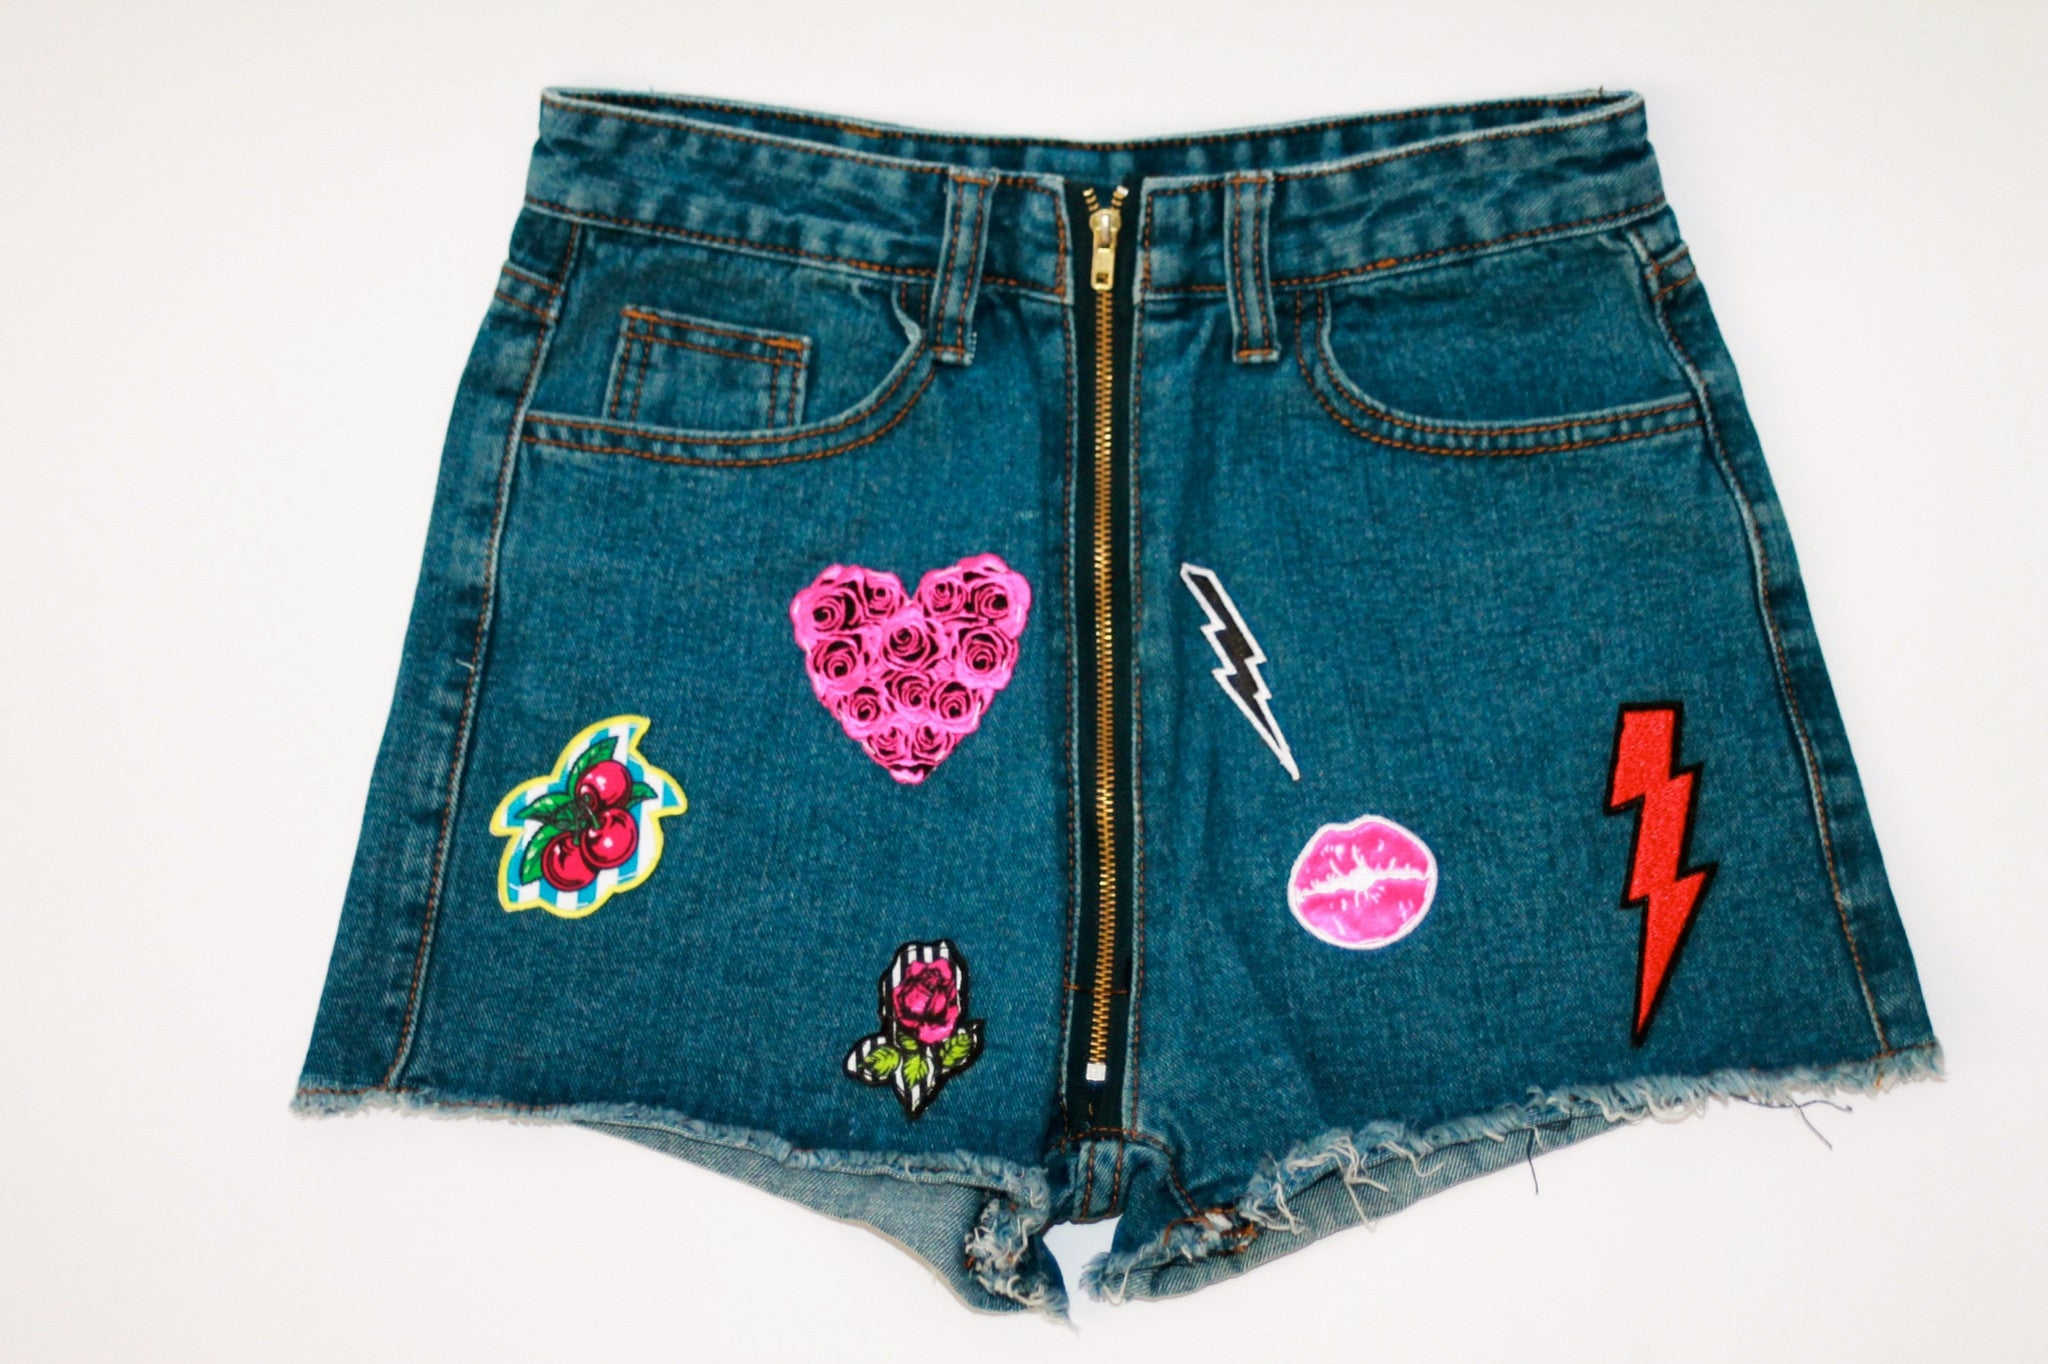 Custom 7ven x Betsey Johnson Patched Shorts #4